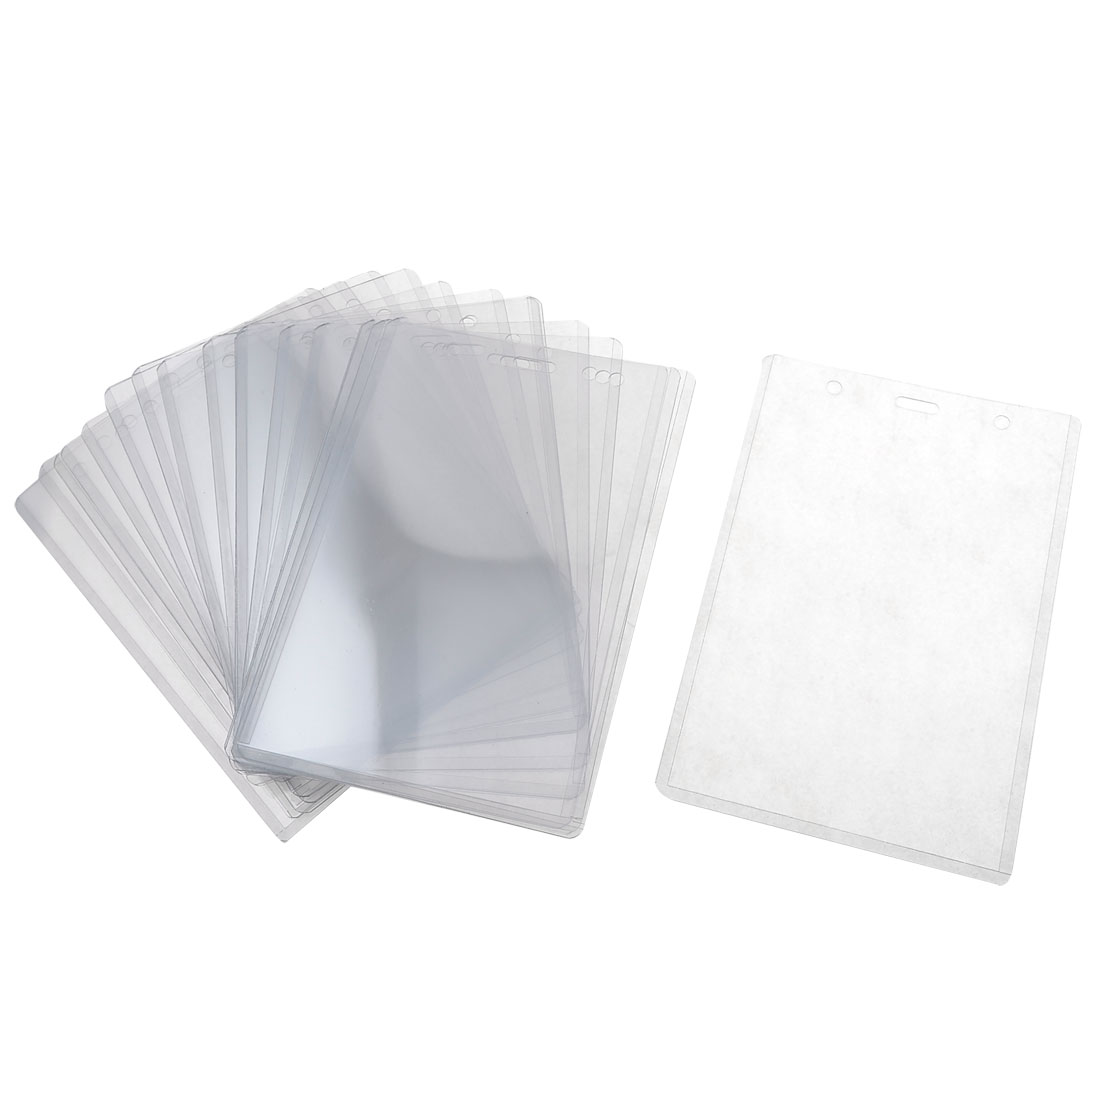 20 Pcs B4 Clear Hard Plastic Name ID Vertical Card Holders